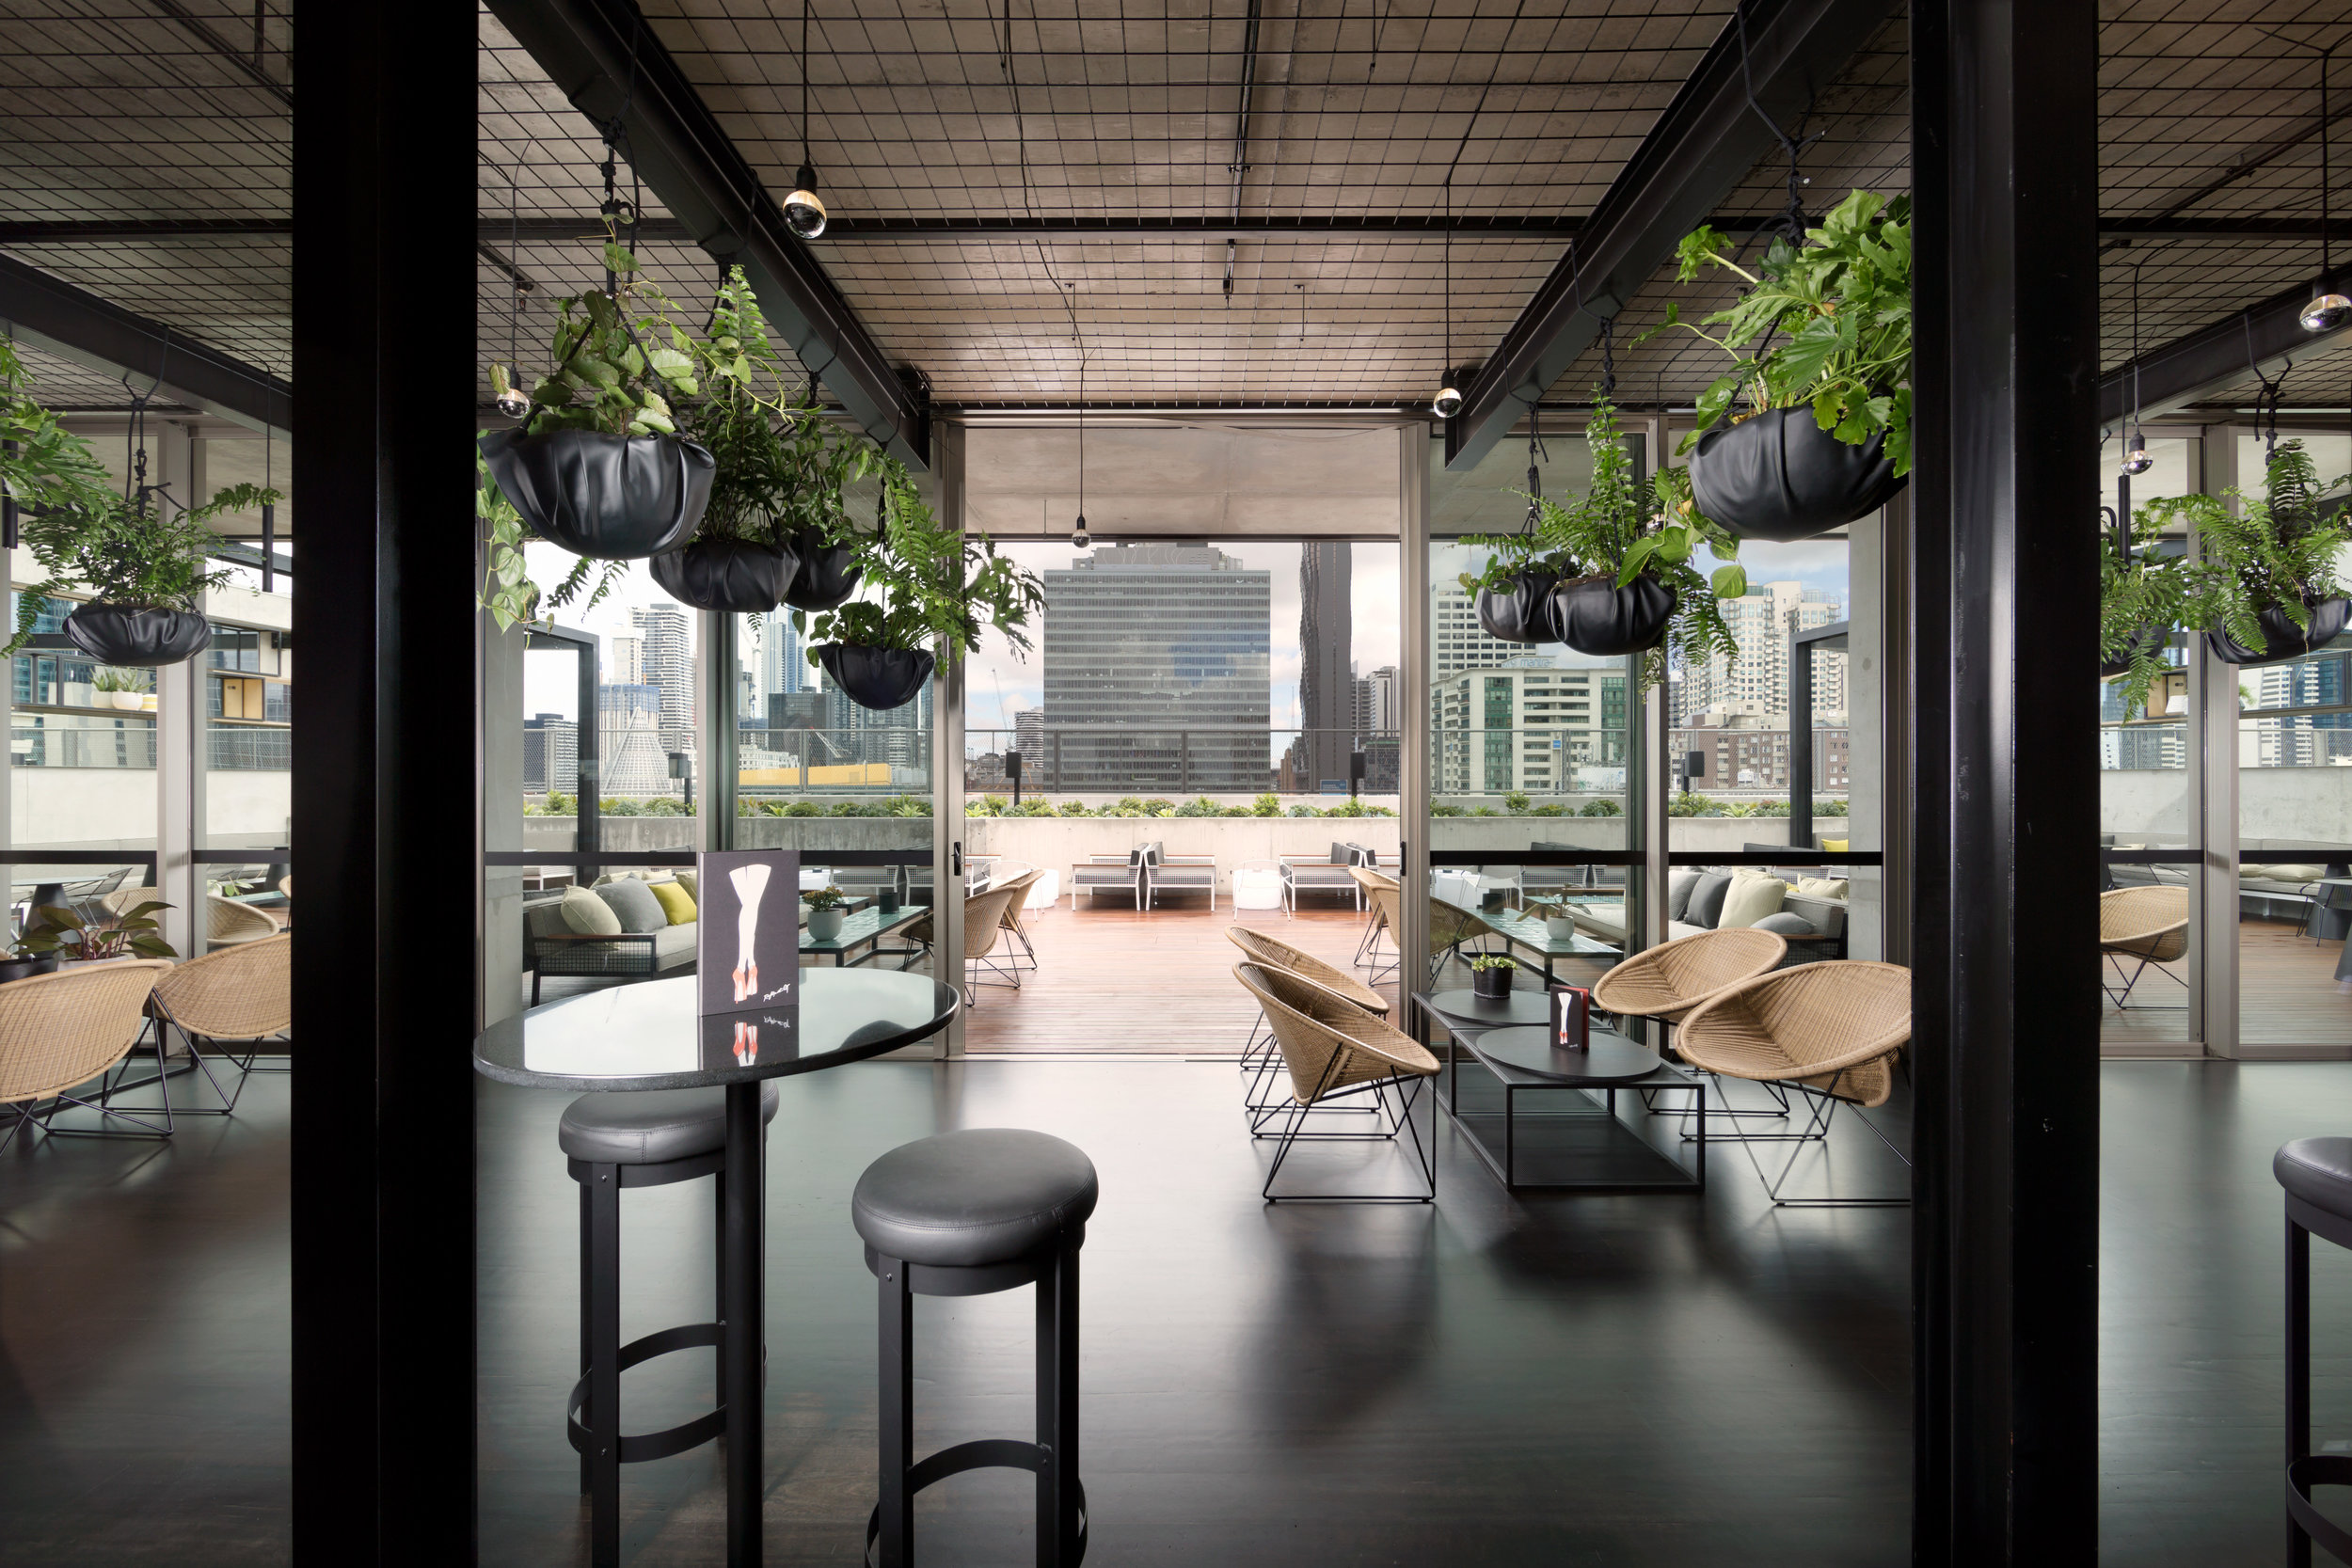 The QT Melbourne with its city views mirrored and transformed with light and plants on the rooftop of the hotel.